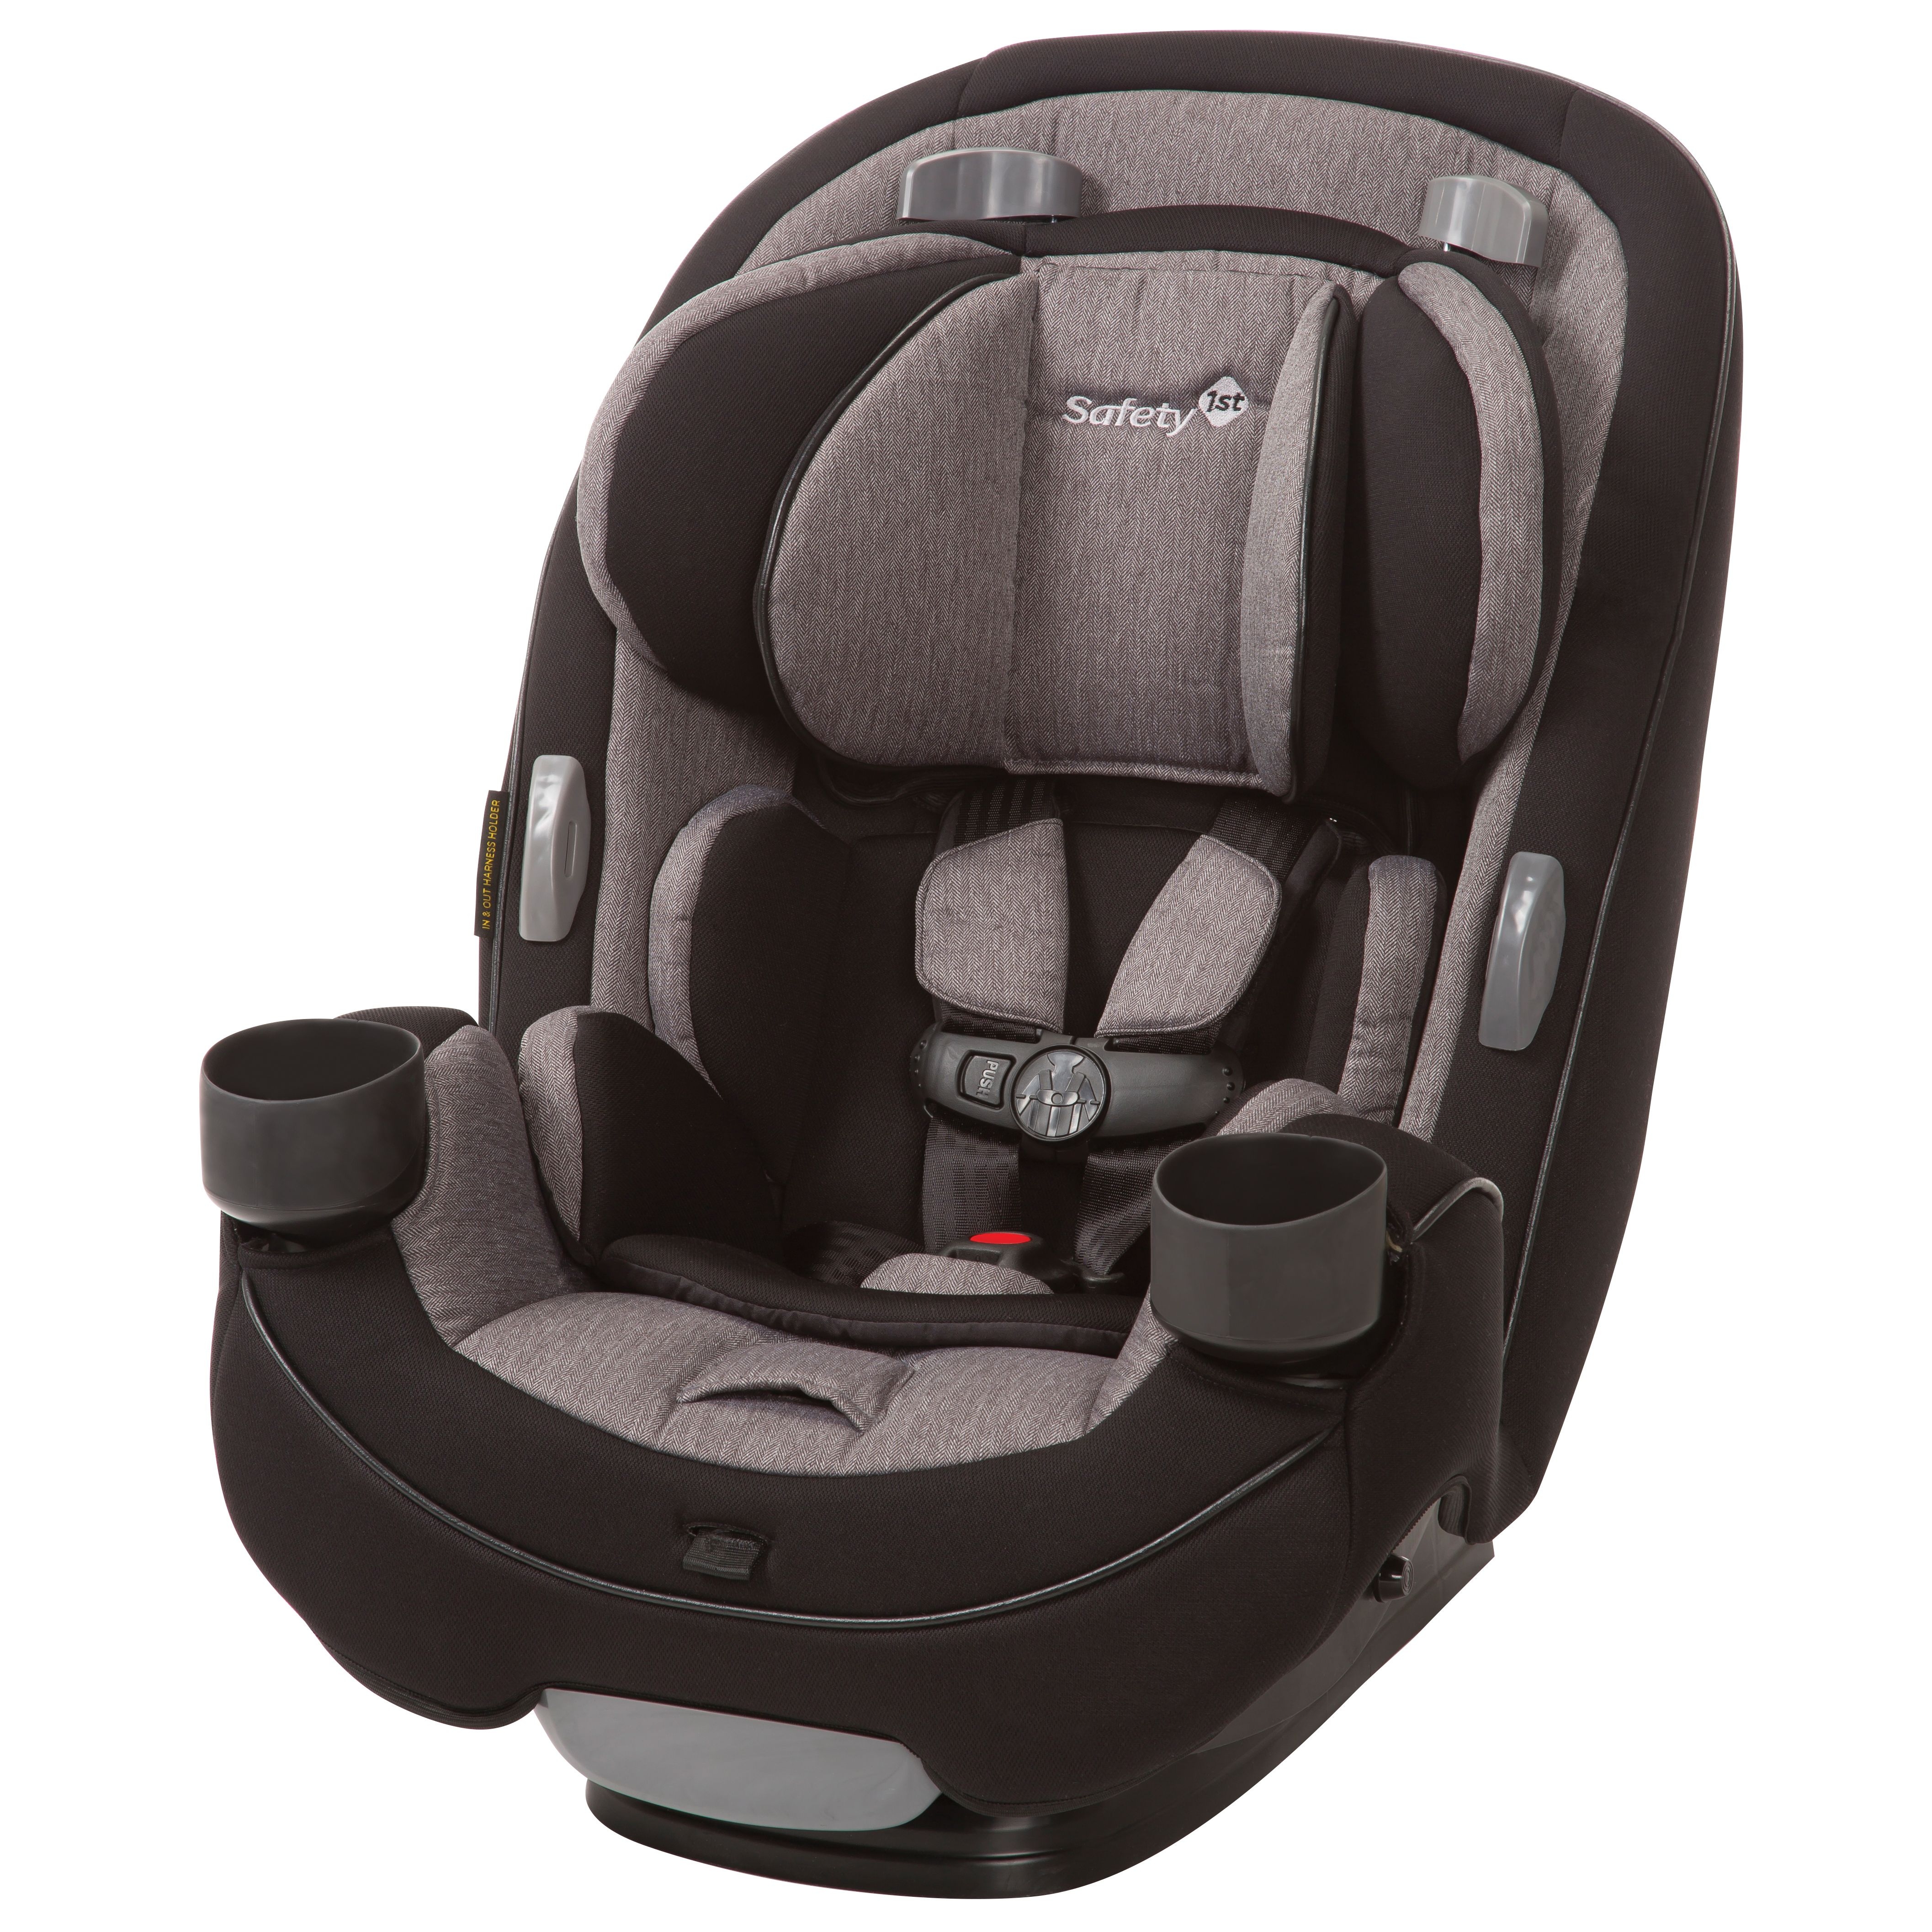 The Safety 1st® Grow and Go™ 3in1 Convertible Car Seat